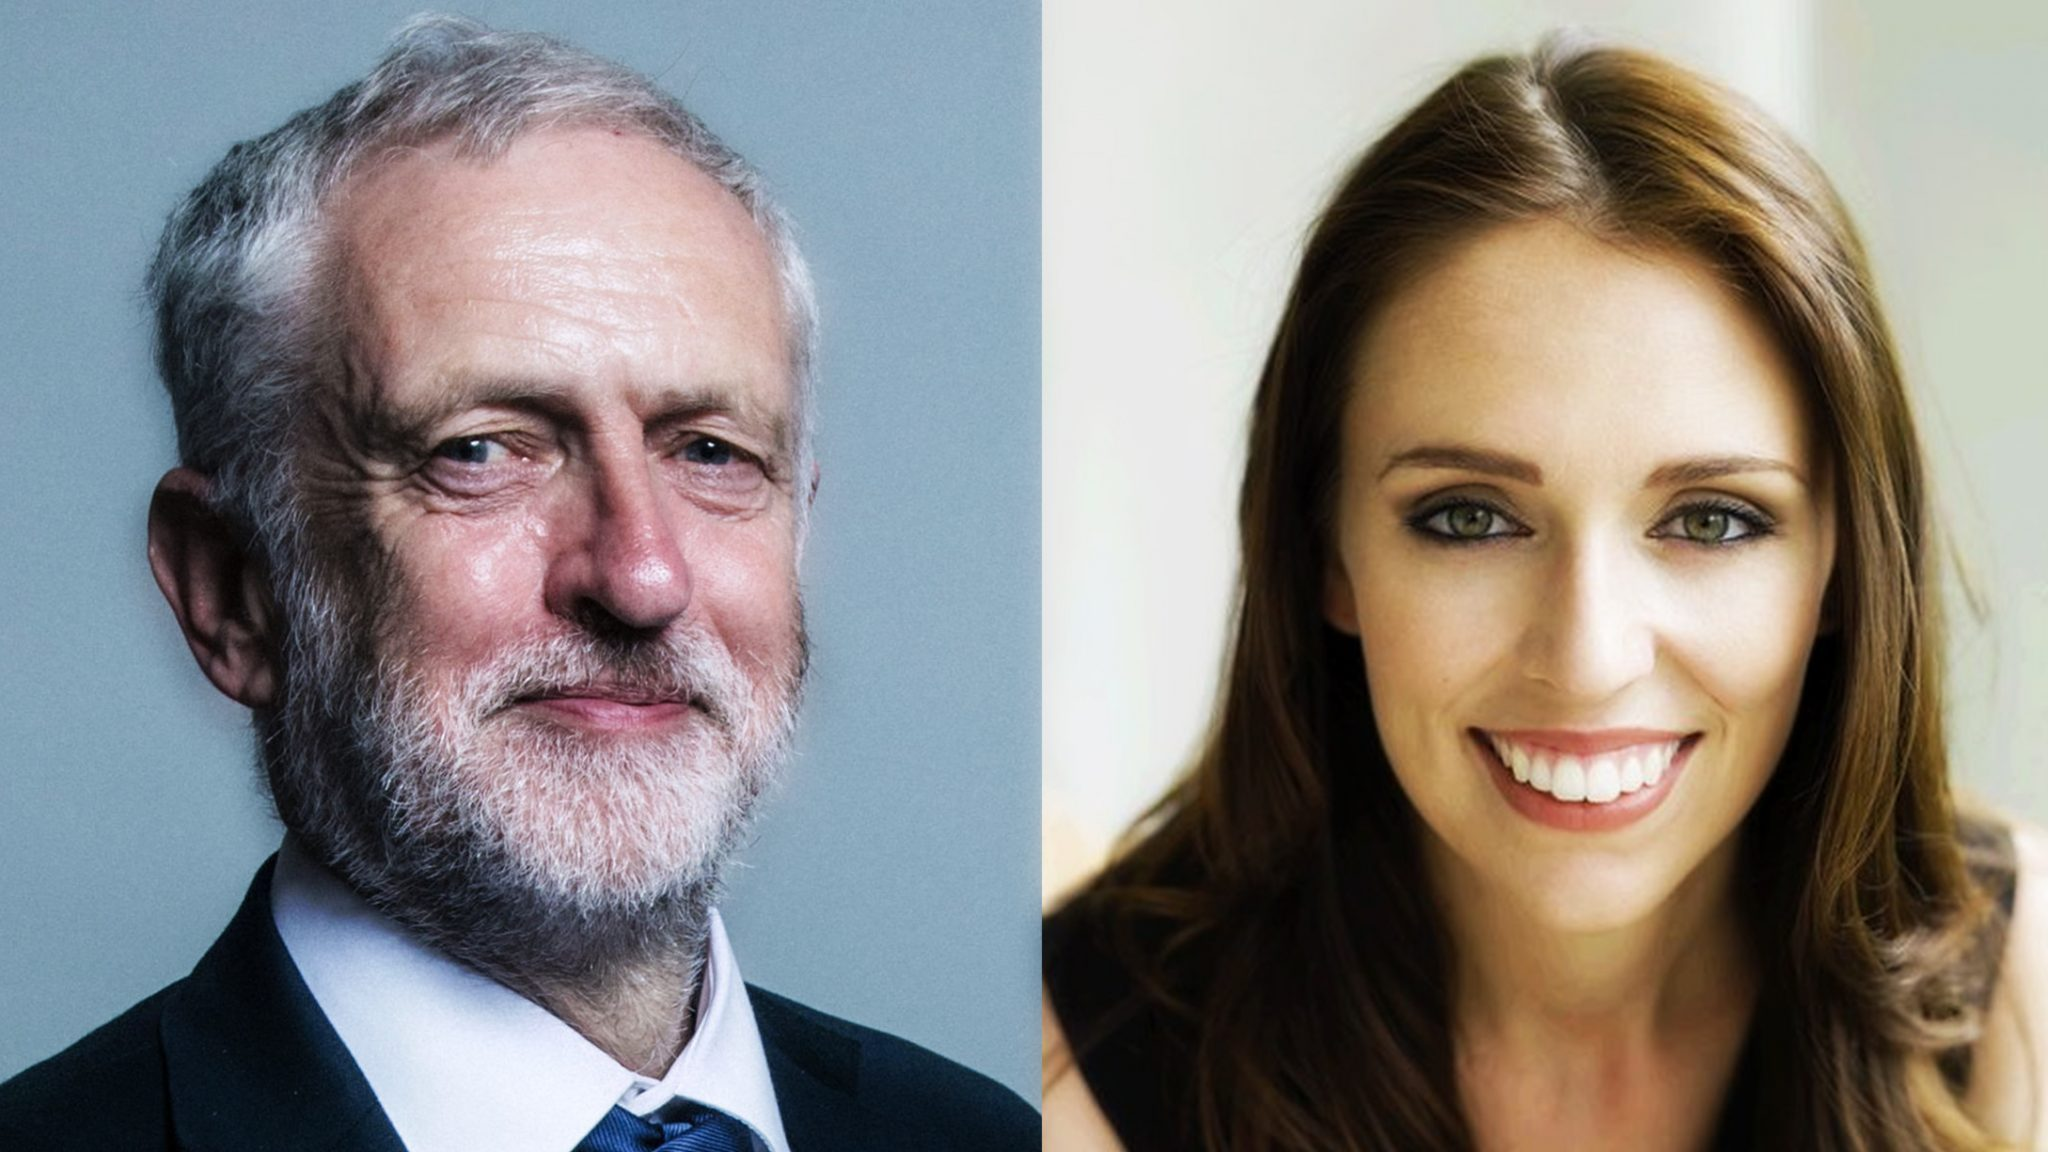 The problem with Ardern's Corbyn endorsement